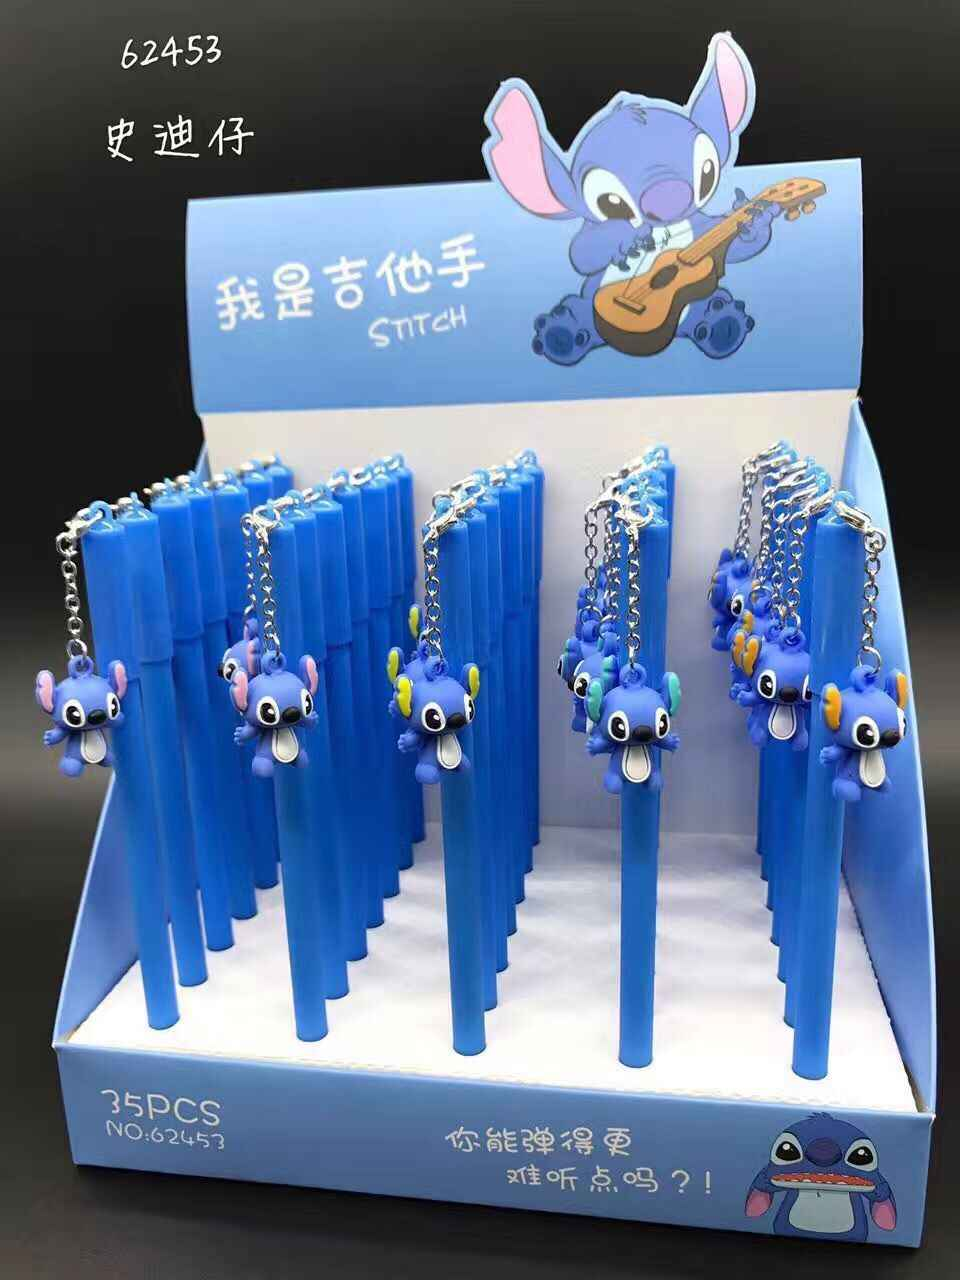 New Design Stitch Pendant Gel Pen Ink Pen Promotional Gift Stationery School & Office Supply